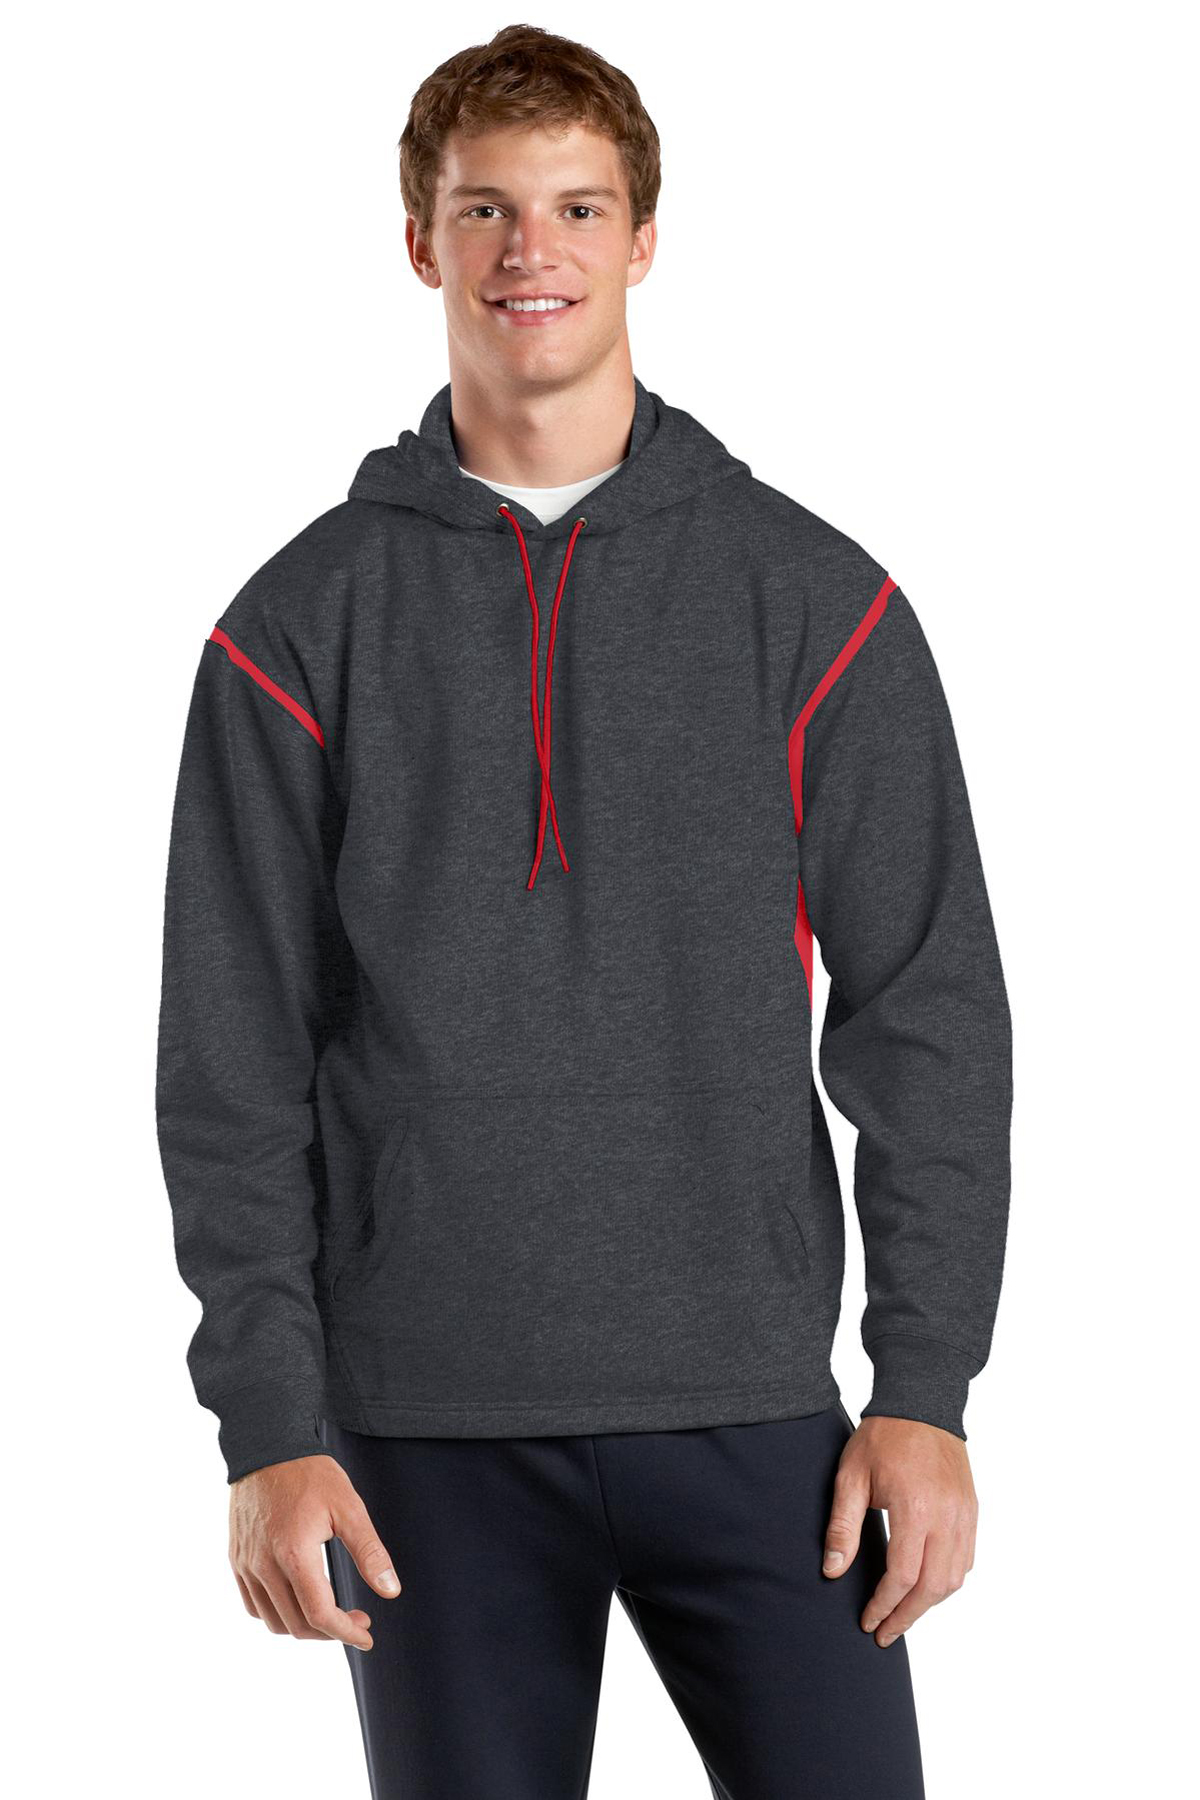 Sweatshirts-Fleece-Hooded-24